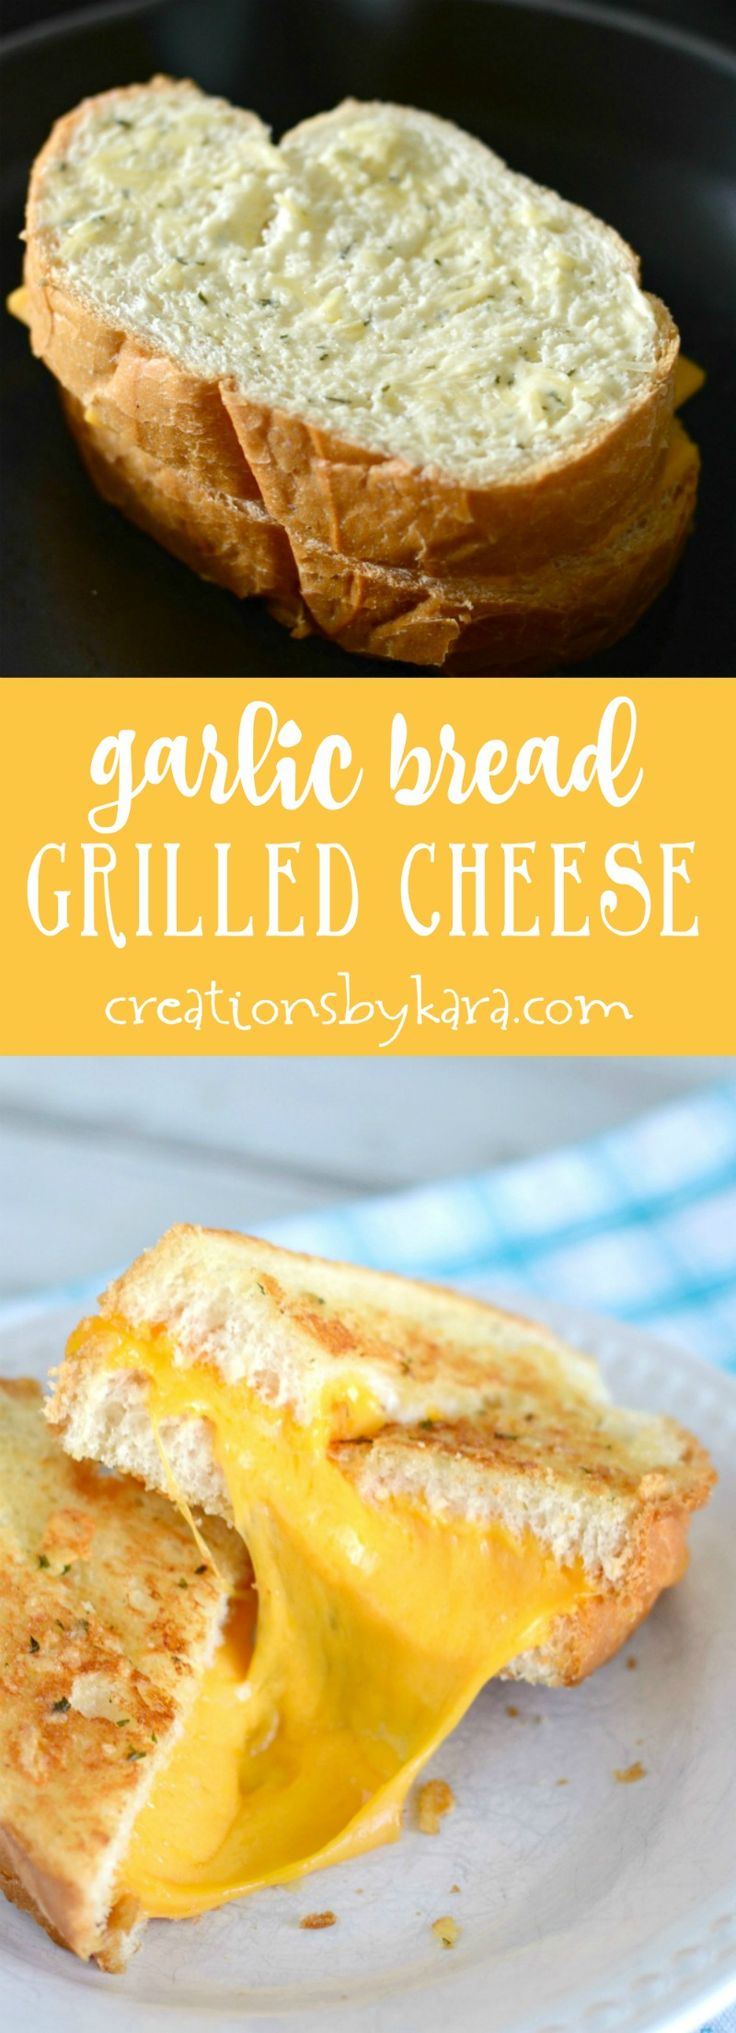 Give these garlic bread grilled cheese sandwiches a try. They are packed with flavor! A tasty update on a classic sandwich! via @creationsbykara.com